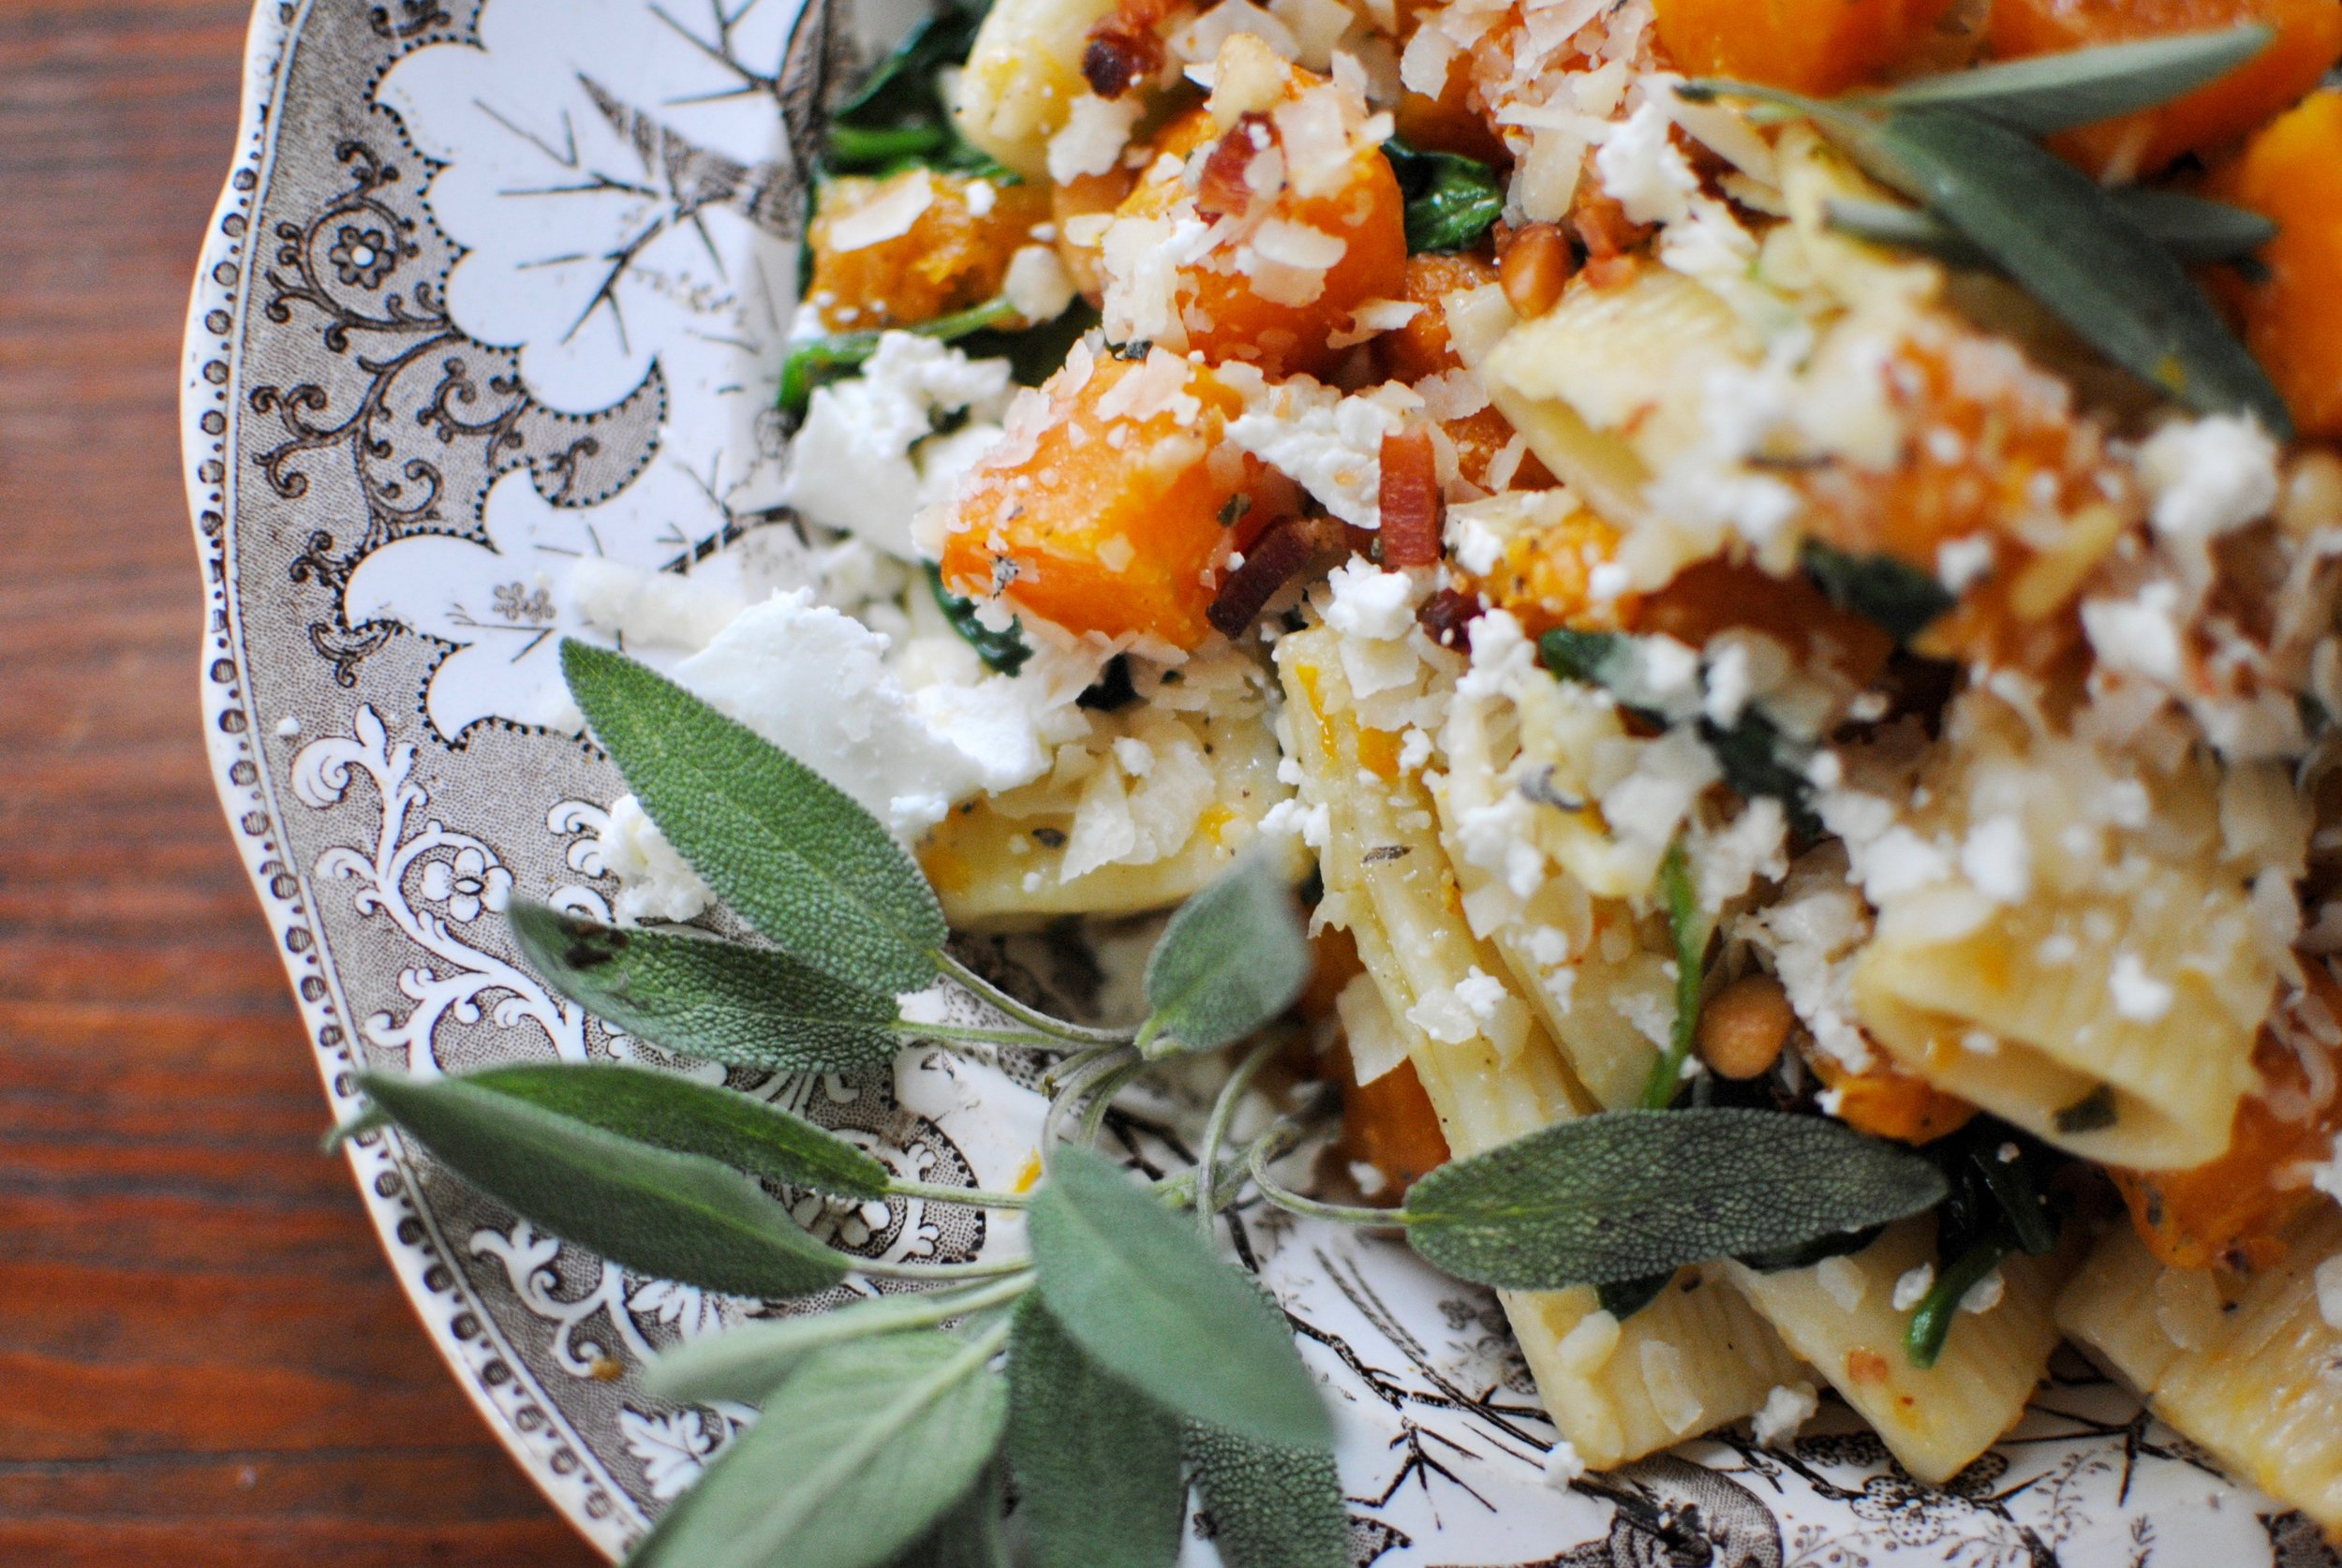 Butternut Squash & Spinach Pasta with Goat Cheese